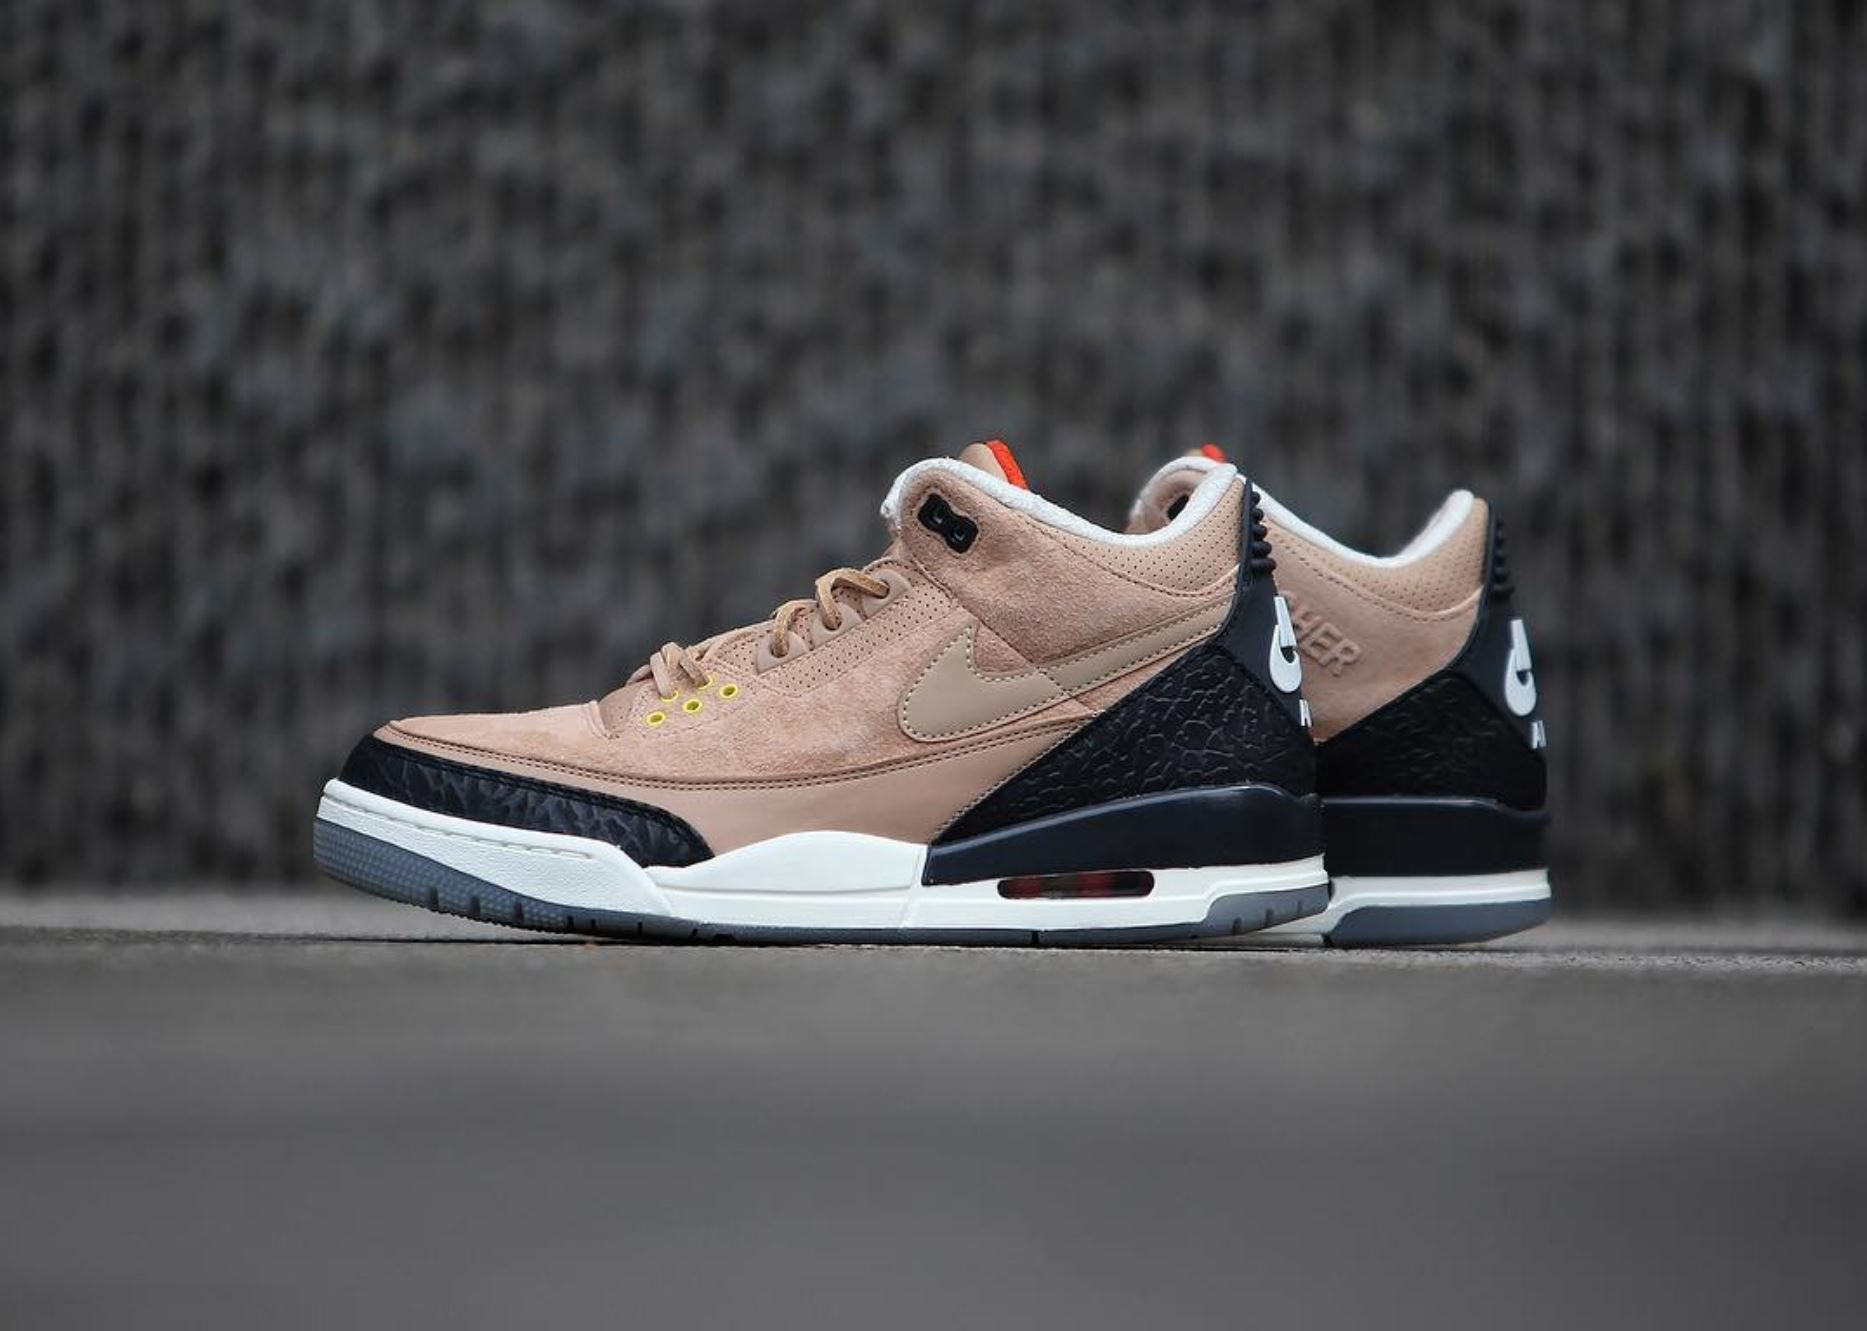 pretty nice f0917 cd86a The Justin Timberlake Air Jordan 3 NRG JTH 'Bio Beige ...